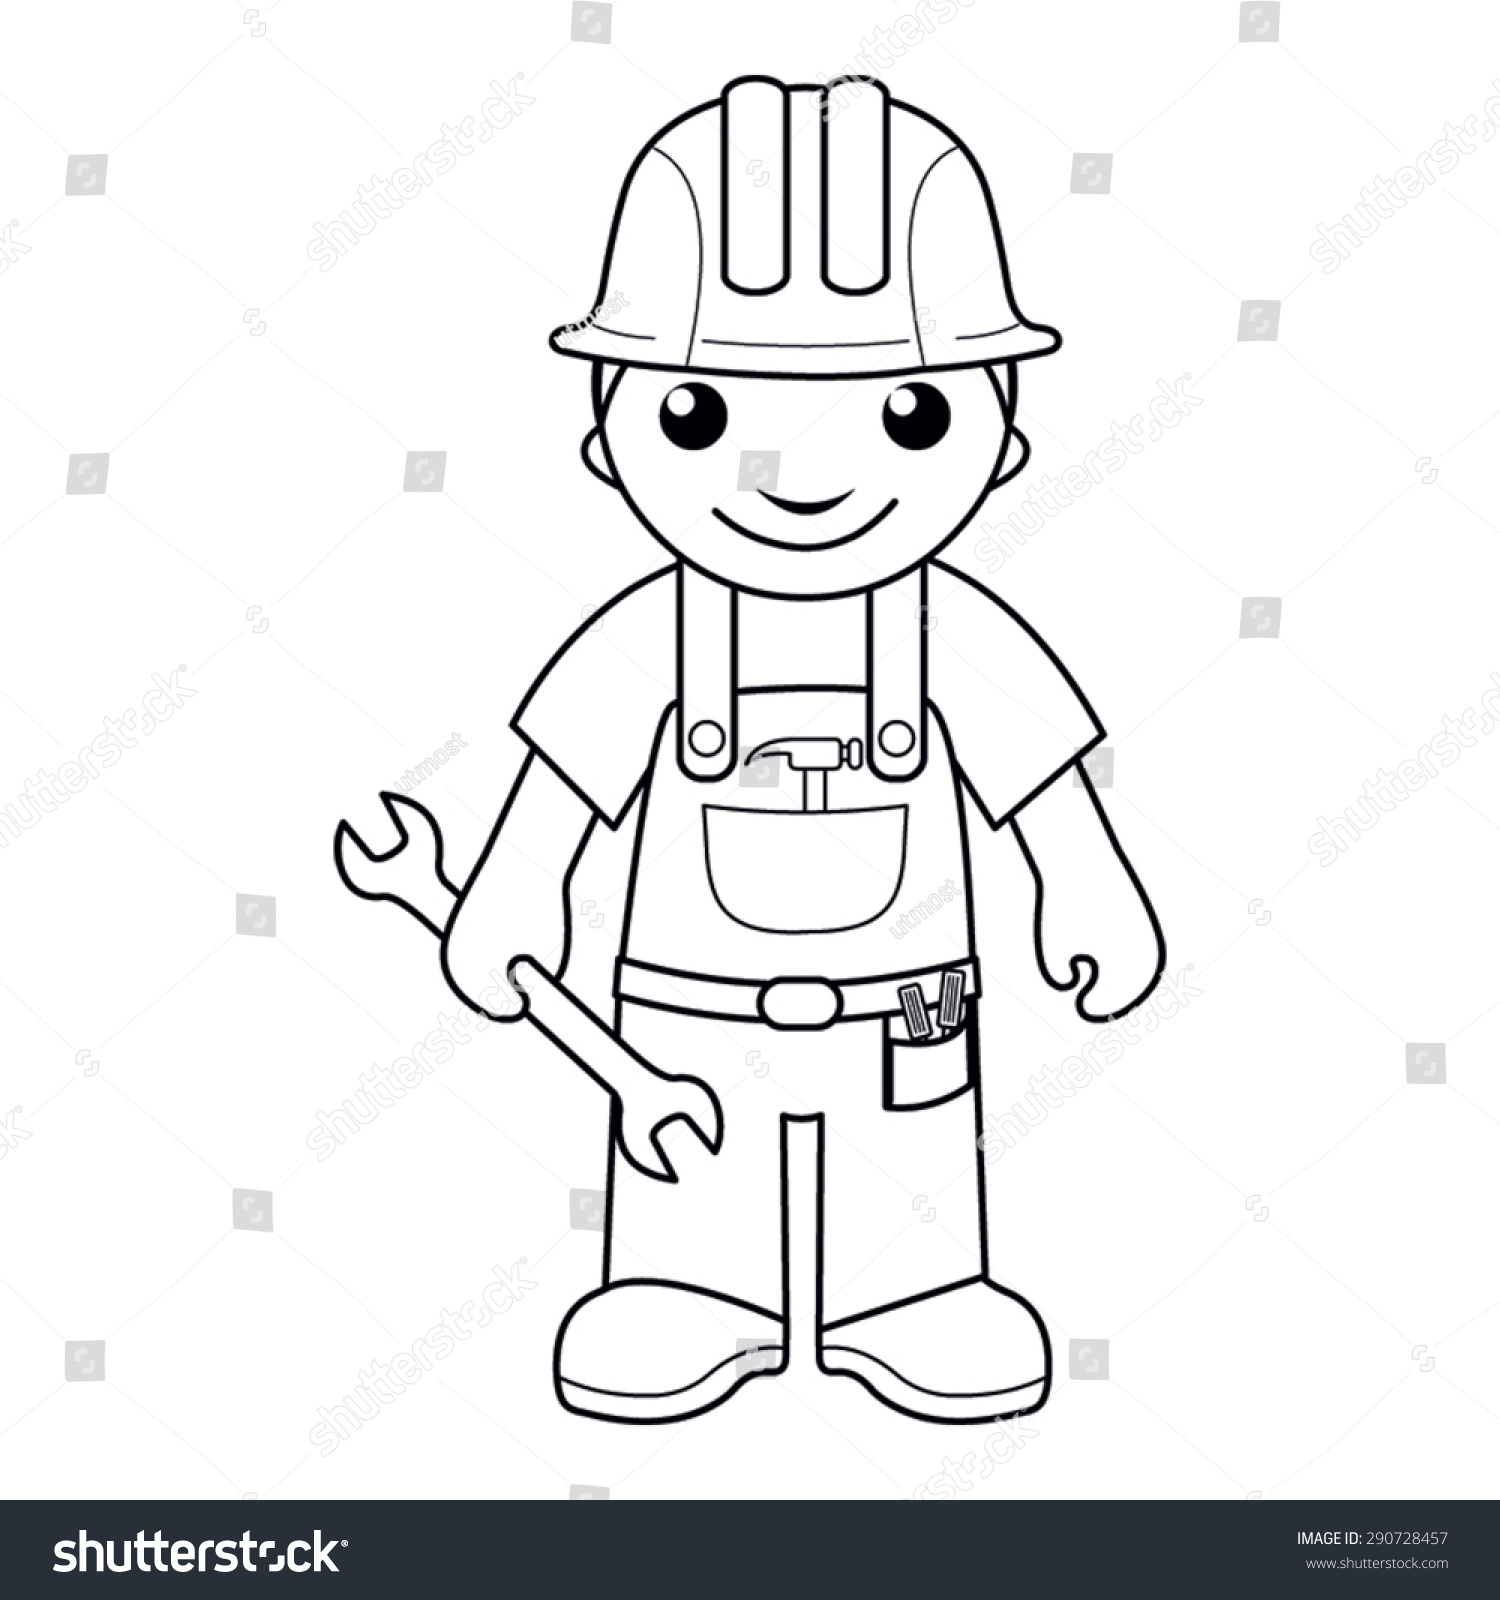 coloring page vector illustration of a black and white outline image of handyman with a